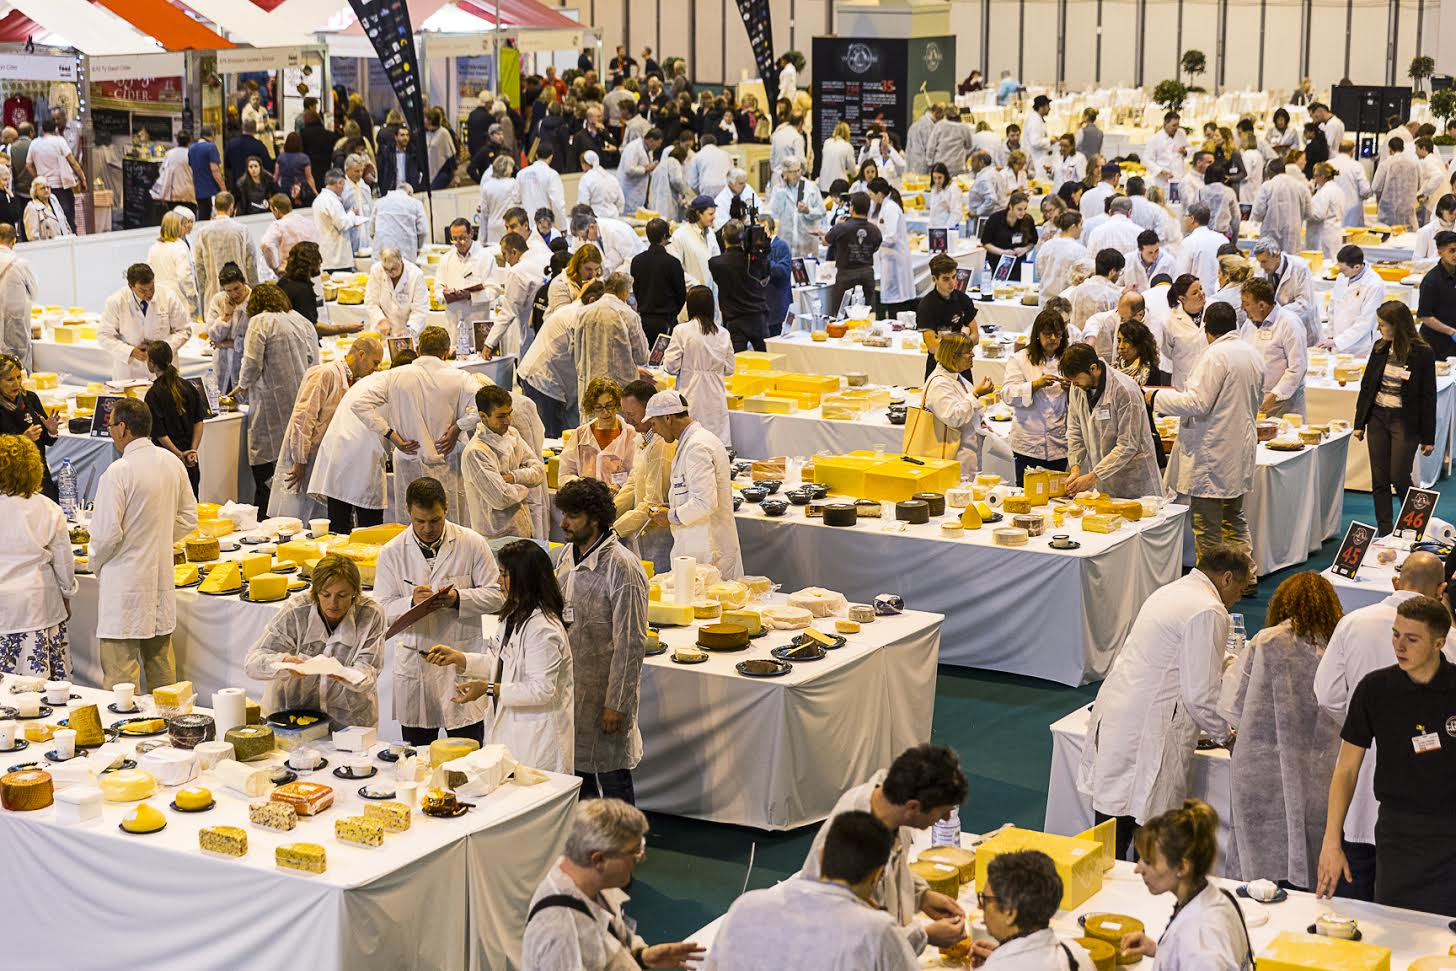 29th annual World Cheese Awards open for entry tomorrow